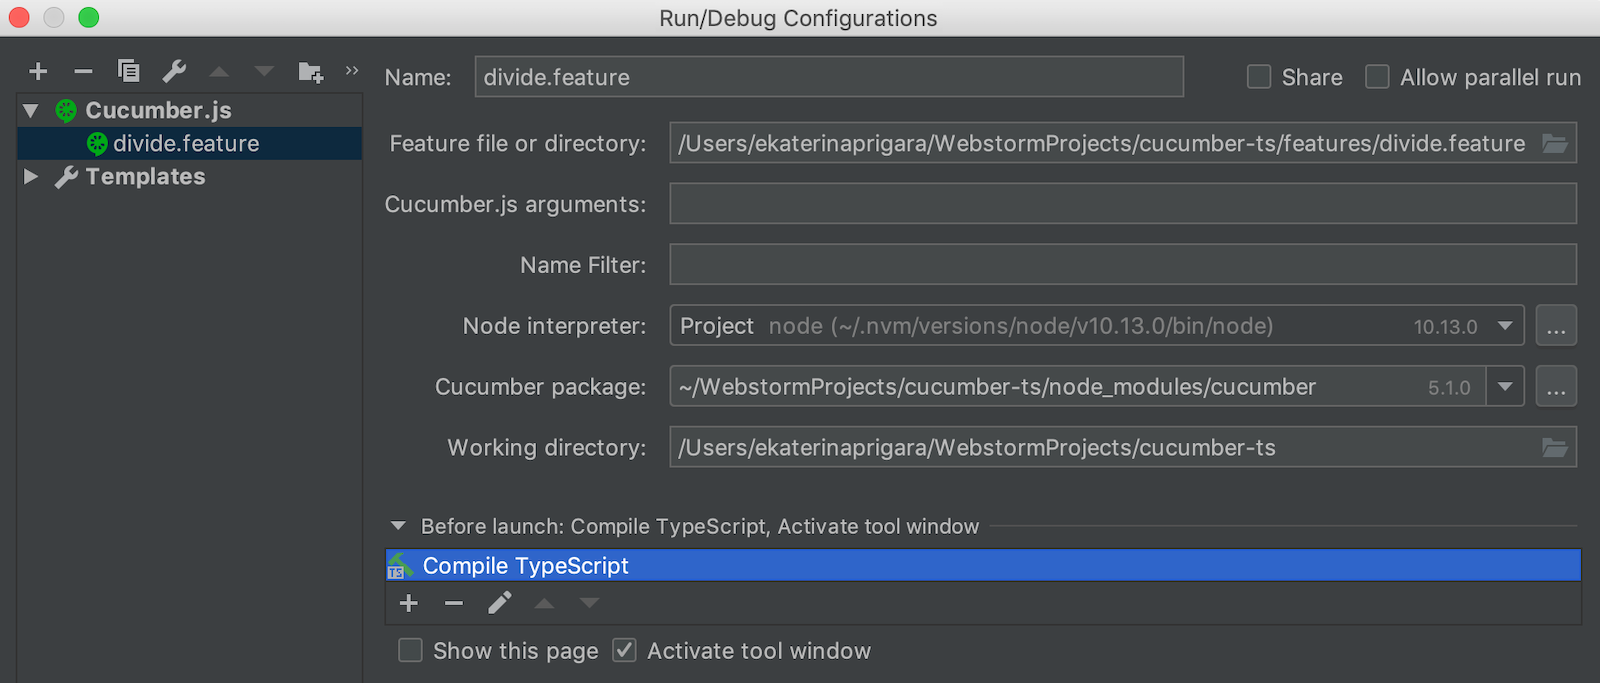 Cucumber configuration with Compile TypeScript action as a Before Launch task